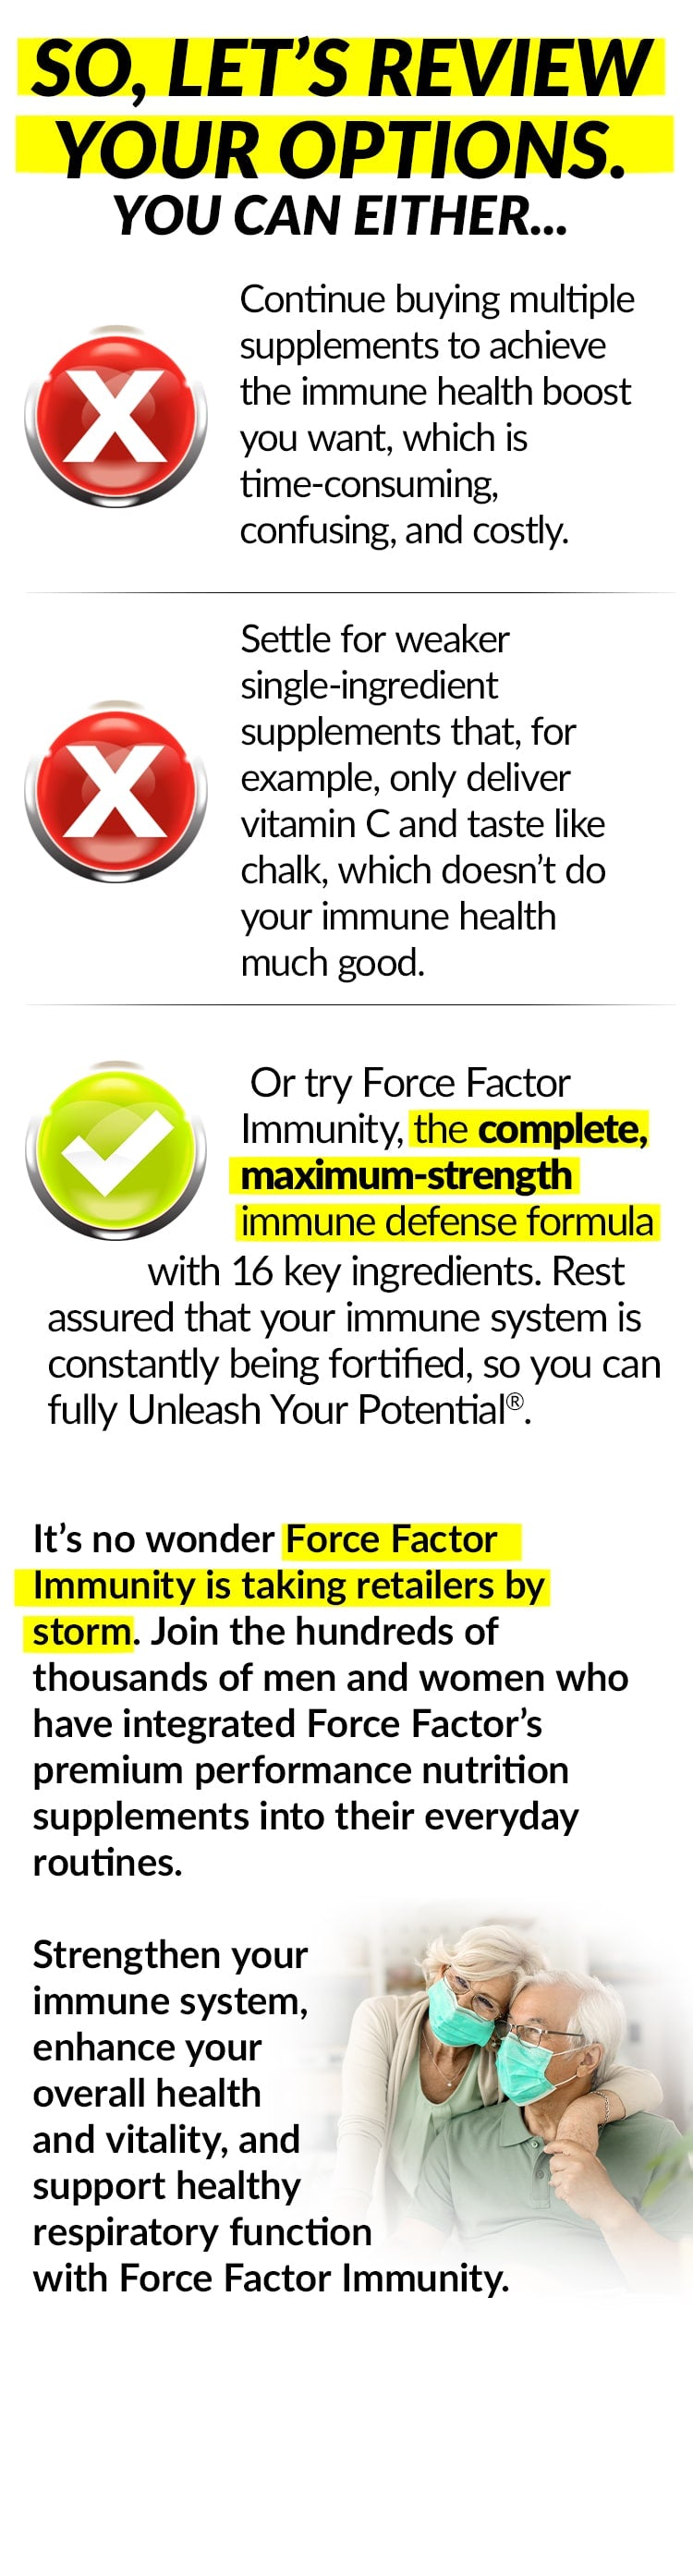 SO, LET'S REVIEW YOUR OPTIONS. YOU CAN EITHER... Continue buying multiple supplements to achieve the immune health boost you want, which is time-consuming, confusing, and costly. Settle for weaker single-ingredient supplements that, for example, only deliver vitamin C and taste like chalk, which doesn't do your immune health much good. Or try Force Factor Immunity, the complete, maximum-strength immune defense formula with 16 key ingredients. Rest assured that your immune system is constantly being fortified, so you can fully Unleash Your Potential®. It's no wonder Force Factor Immunity is taking retailers by storm. Join the hundreds of thousands of men and women who have integrated Force Factor's premium performance nutrition supplements into their everyday routines. Strengthen your immune system, enhance your overall health and vitality, and support healthy respiratory function with Force Factor Immunity.